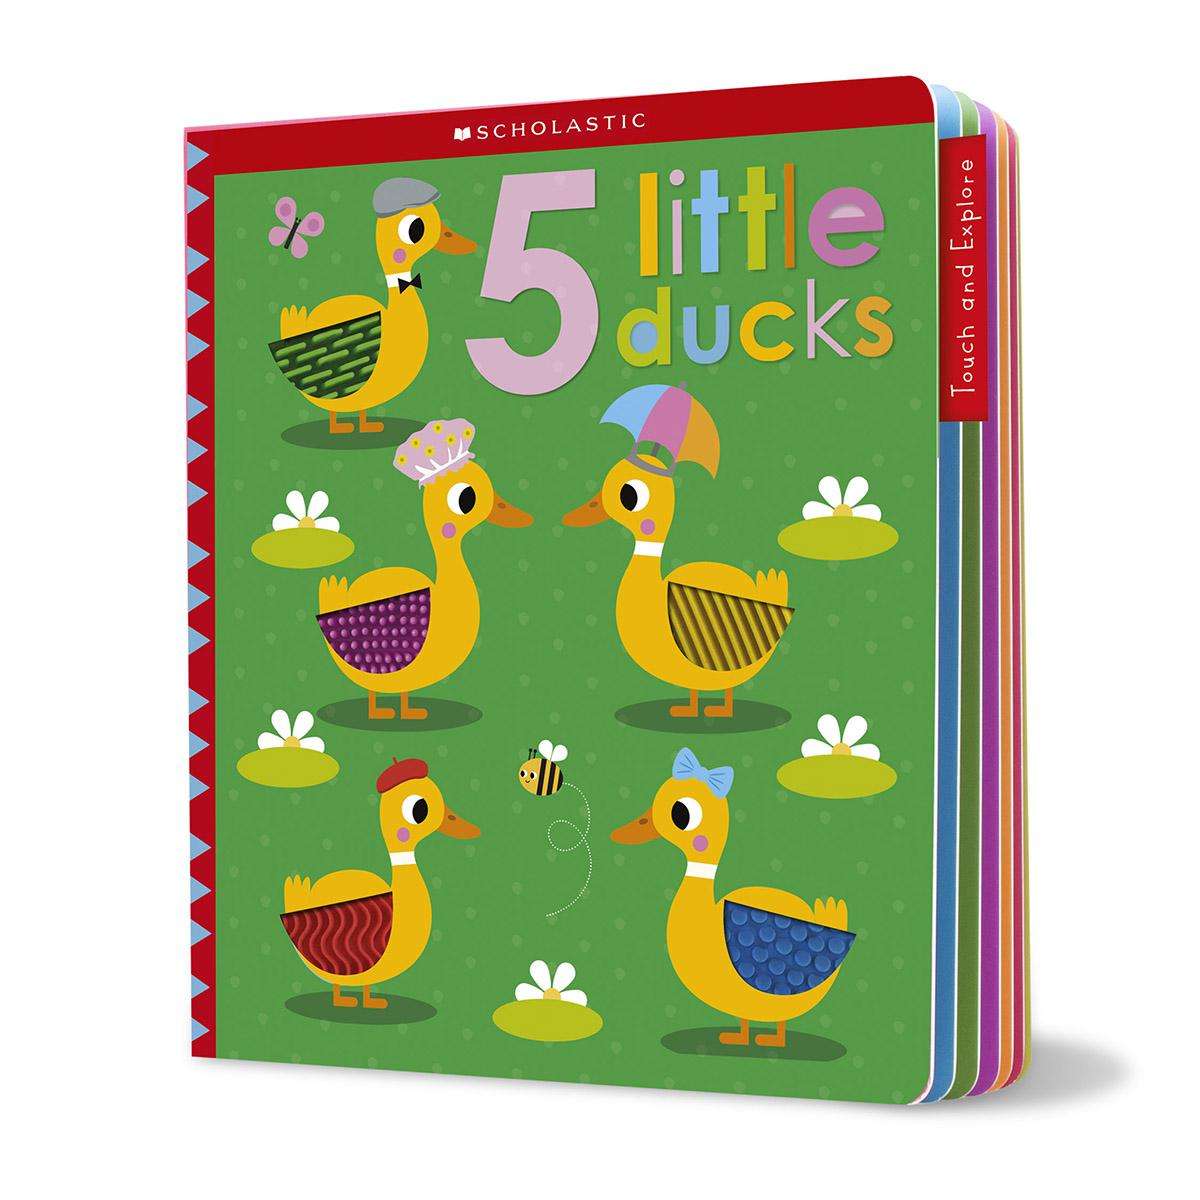 Scholastic Early Learners: 5 Little Ducks